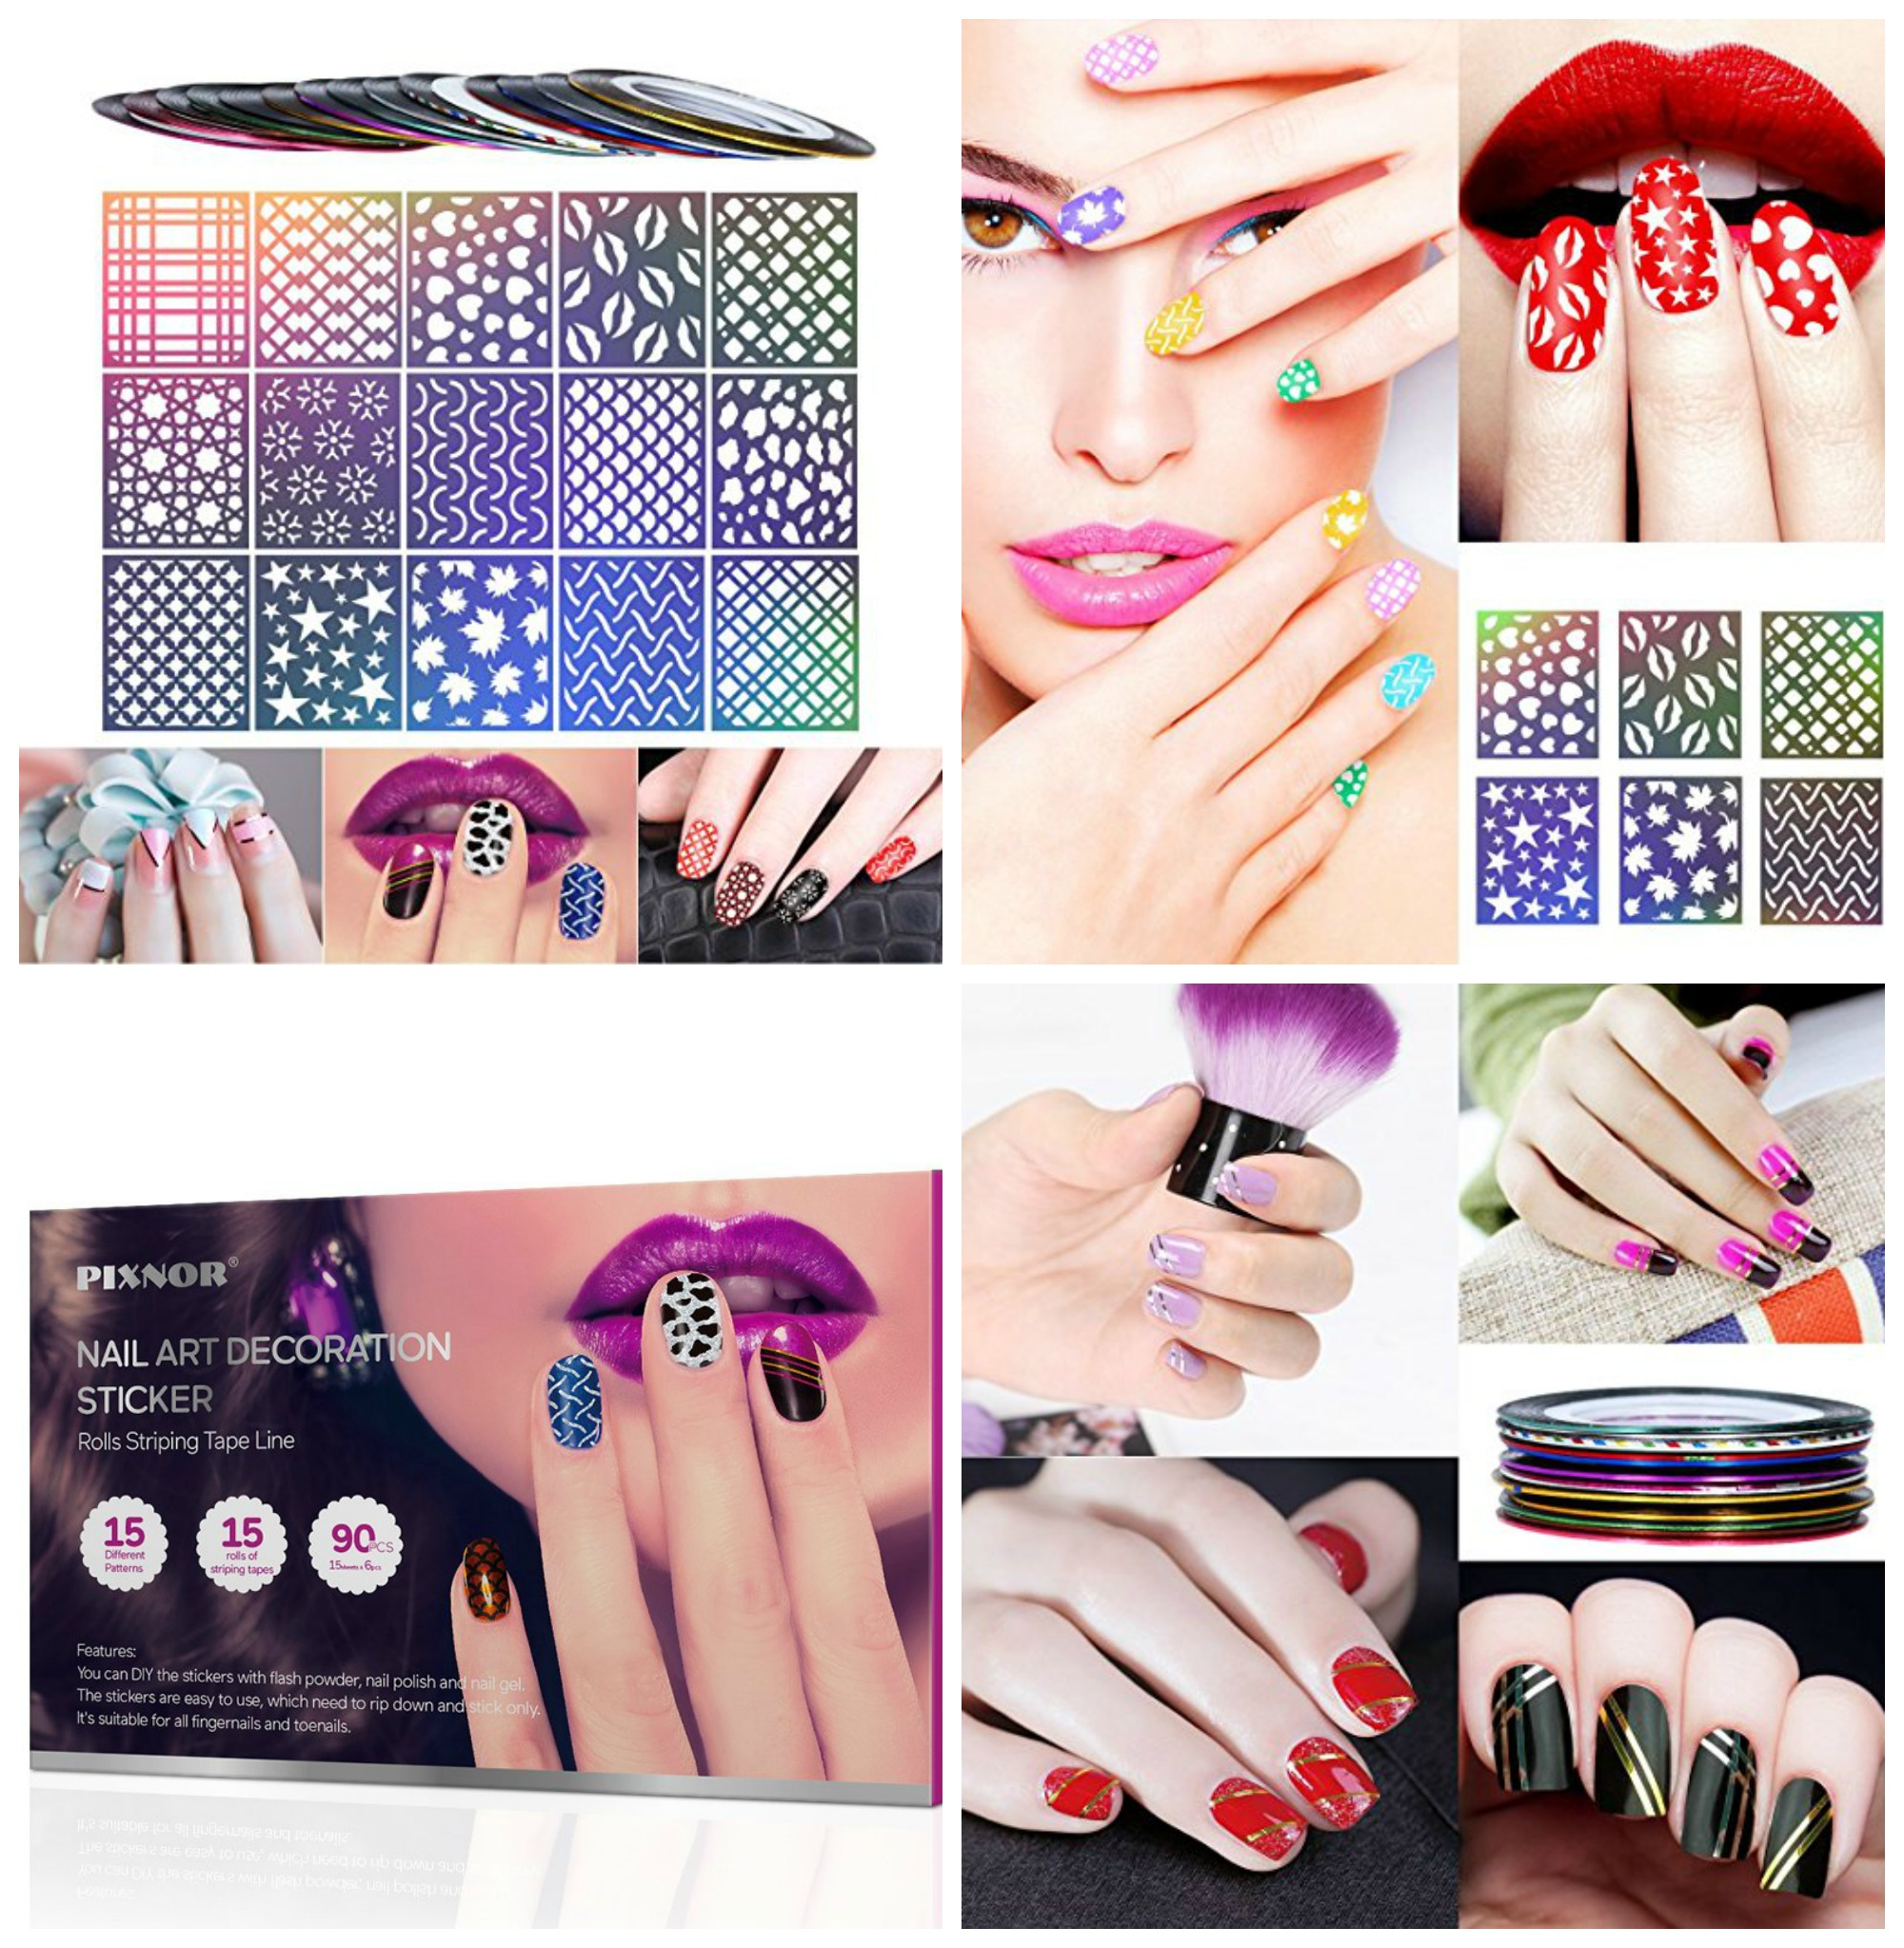 90 Piece Nail Art Decoration Stencil and Stripe Tape Set Only $9.99